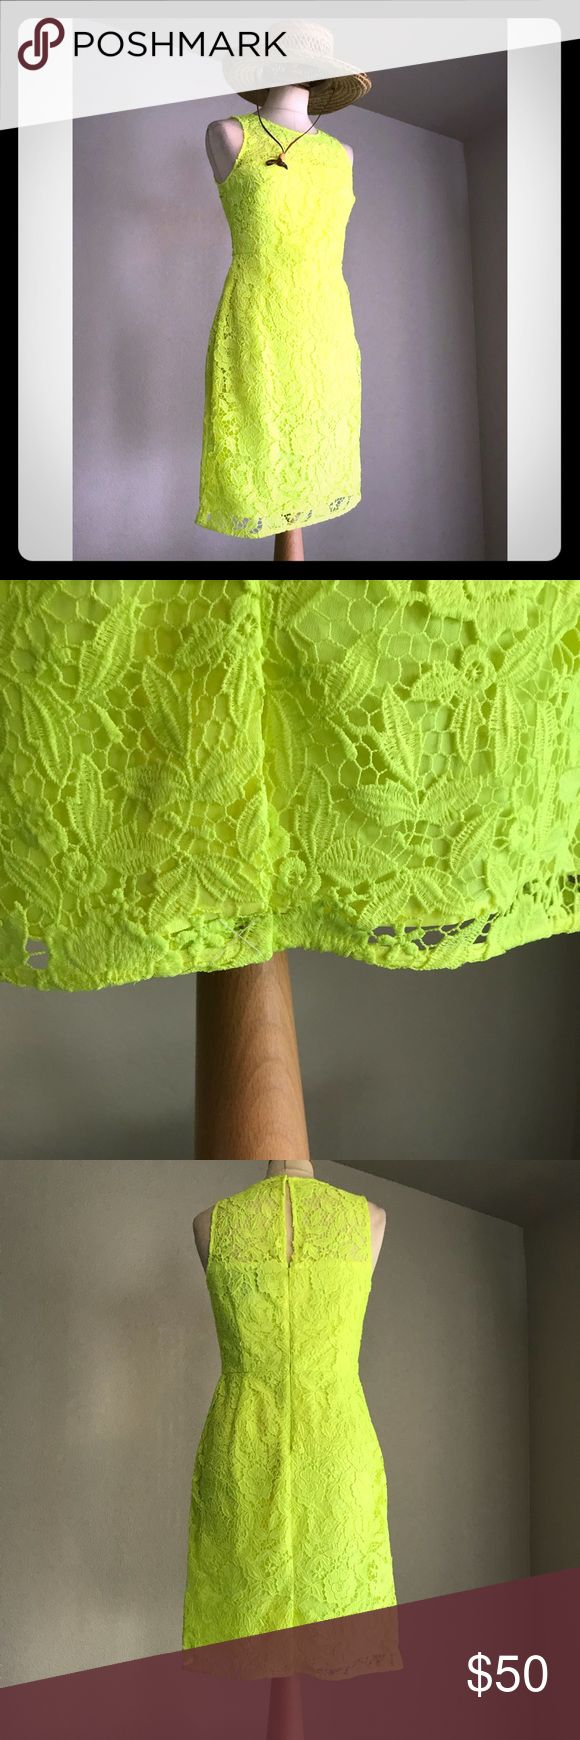 J. Crew Collection lace dress neon yellow Stretchy and form fitting cut to be very flattering. J. Crew dress neon yellow like a light lime green ! J. Crew Collection Dresses Mini